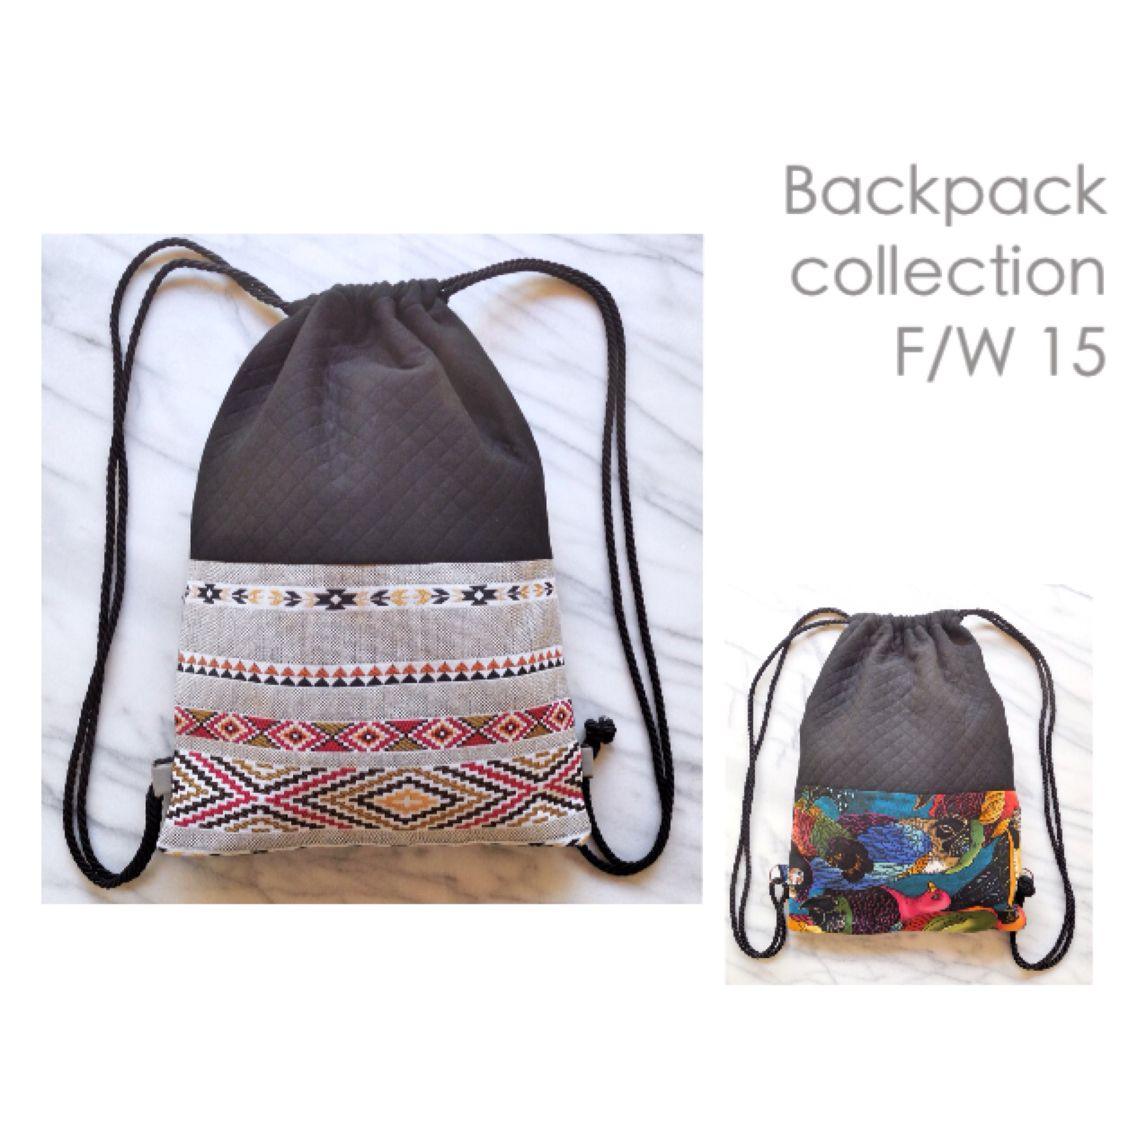 Backpack collection 2015  Navajo ethnique tropical tropicool  Handmade made in france Montpellier Accessoires Sac à dos